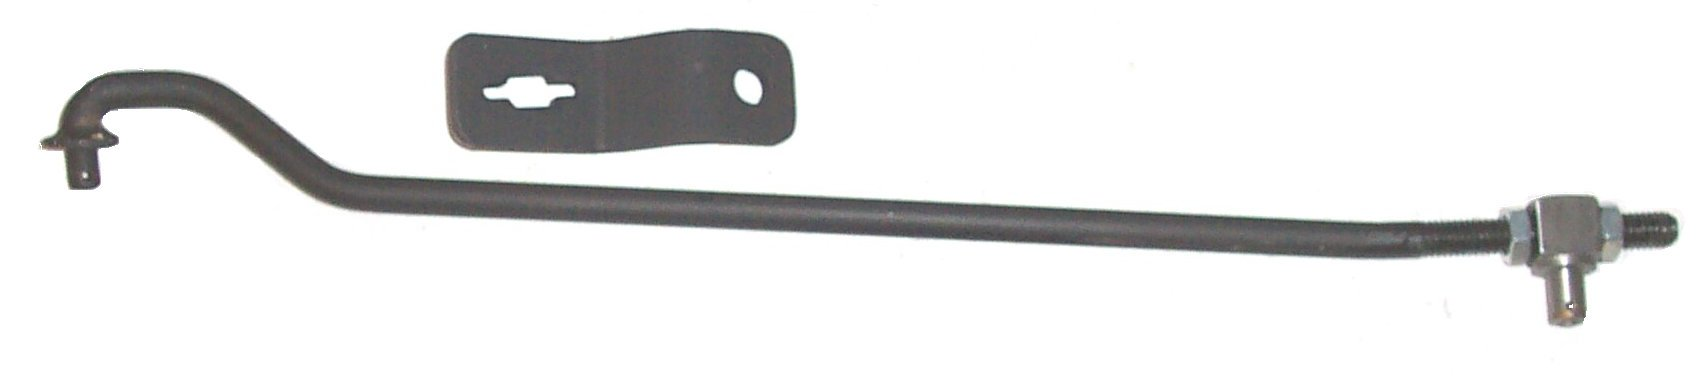 SHIFTER ROD KIT, TH350 400 NEW 67 CAMARO FIREBIRD